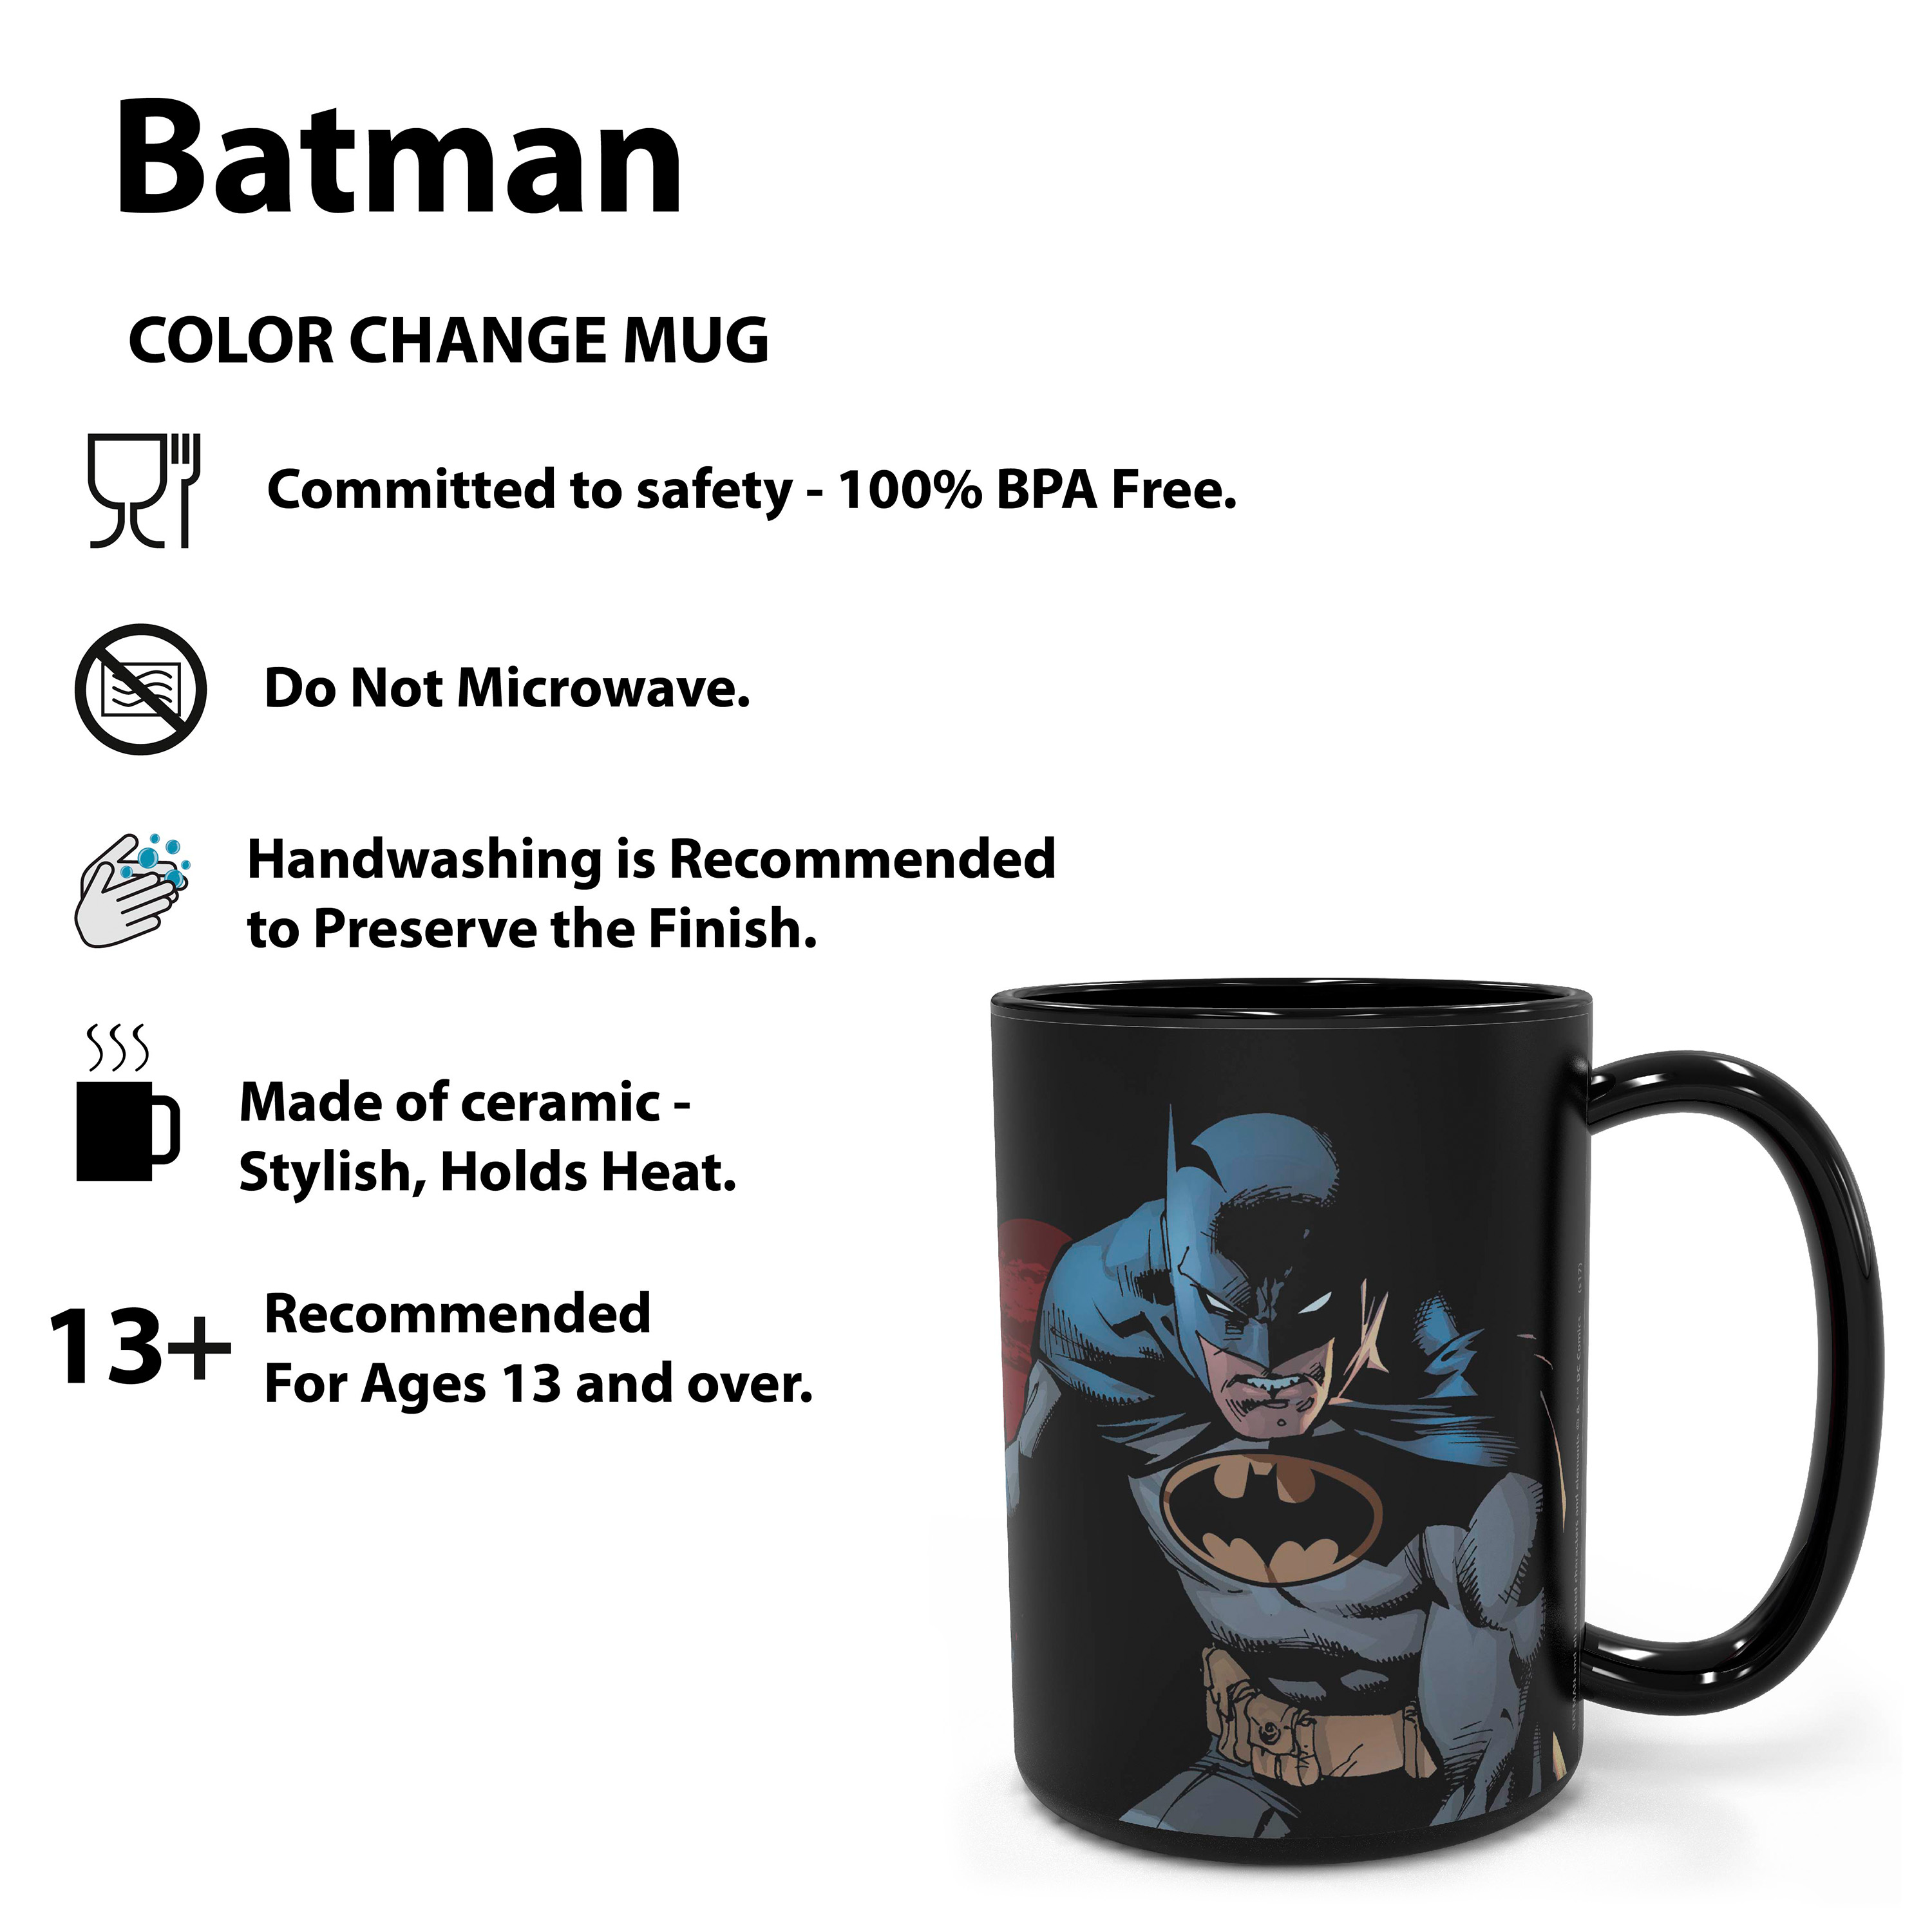 DC Comics 15 oz. Coffee Mug, Batman slideshow image 12